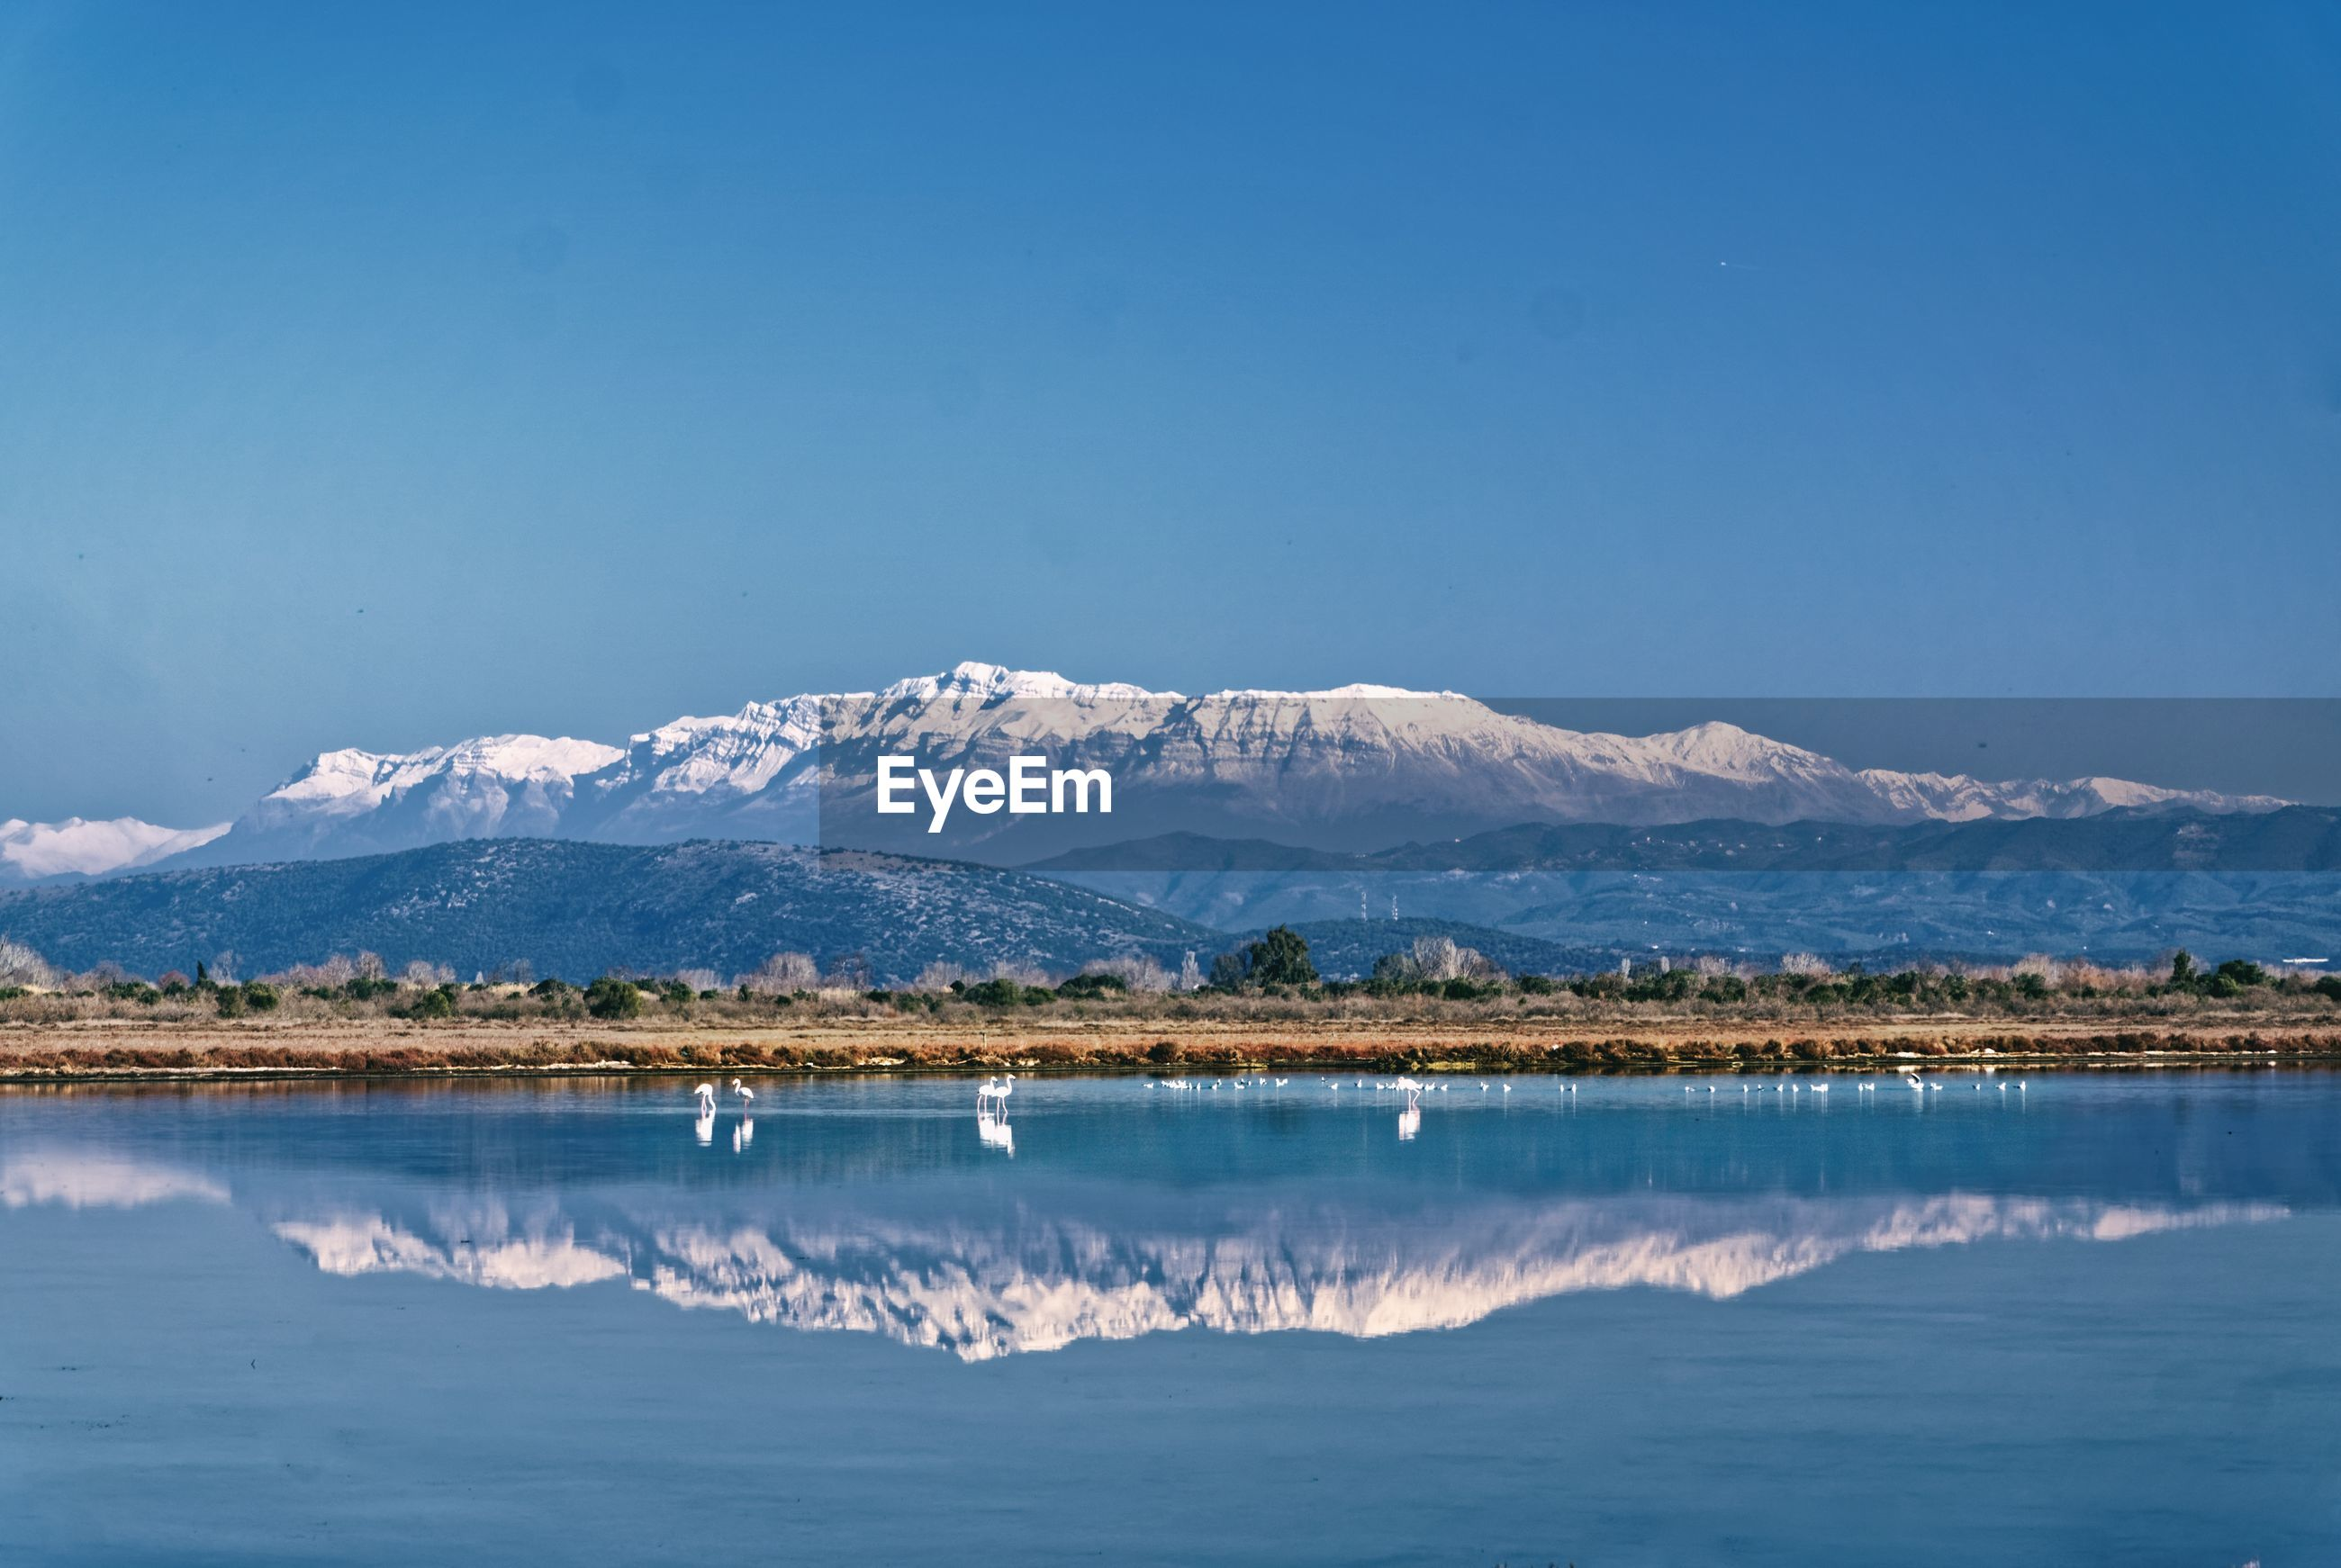 Scenic view of lake and snowcapped mountains against clear blue sky